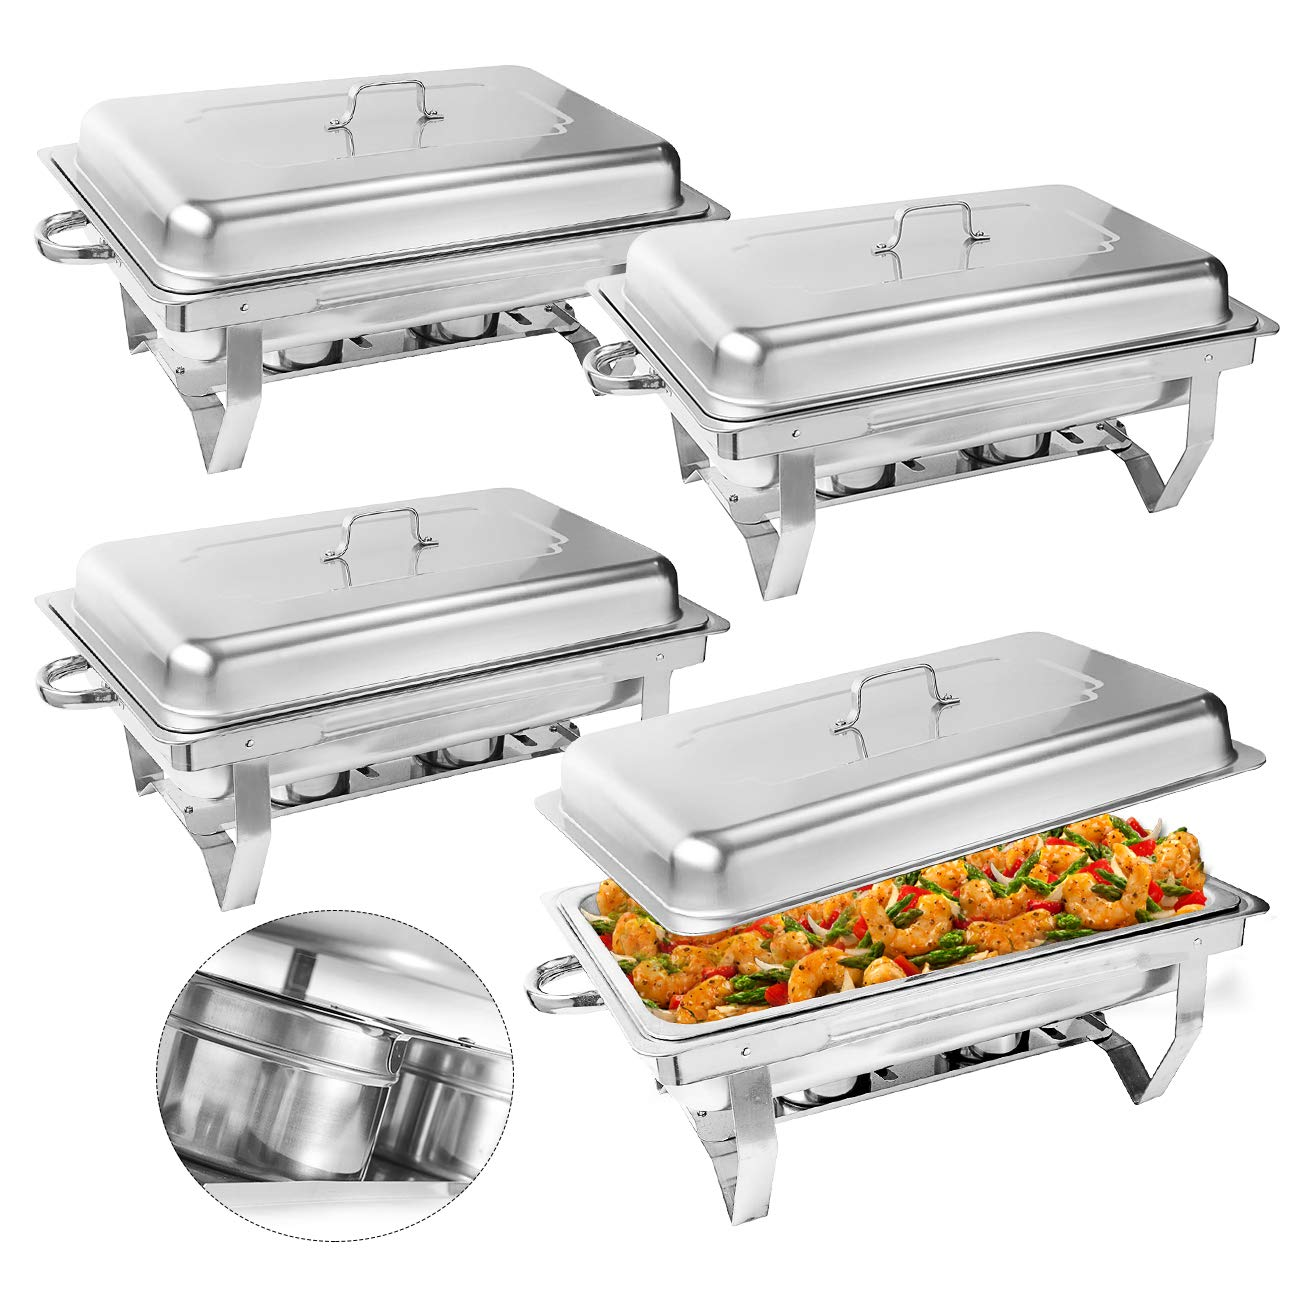 BEAMNOVA Chafing Dishes and Stand 4 Pack 8 Quart Warming Trays for Buffets Server Stainless Steel Chafer Warmer